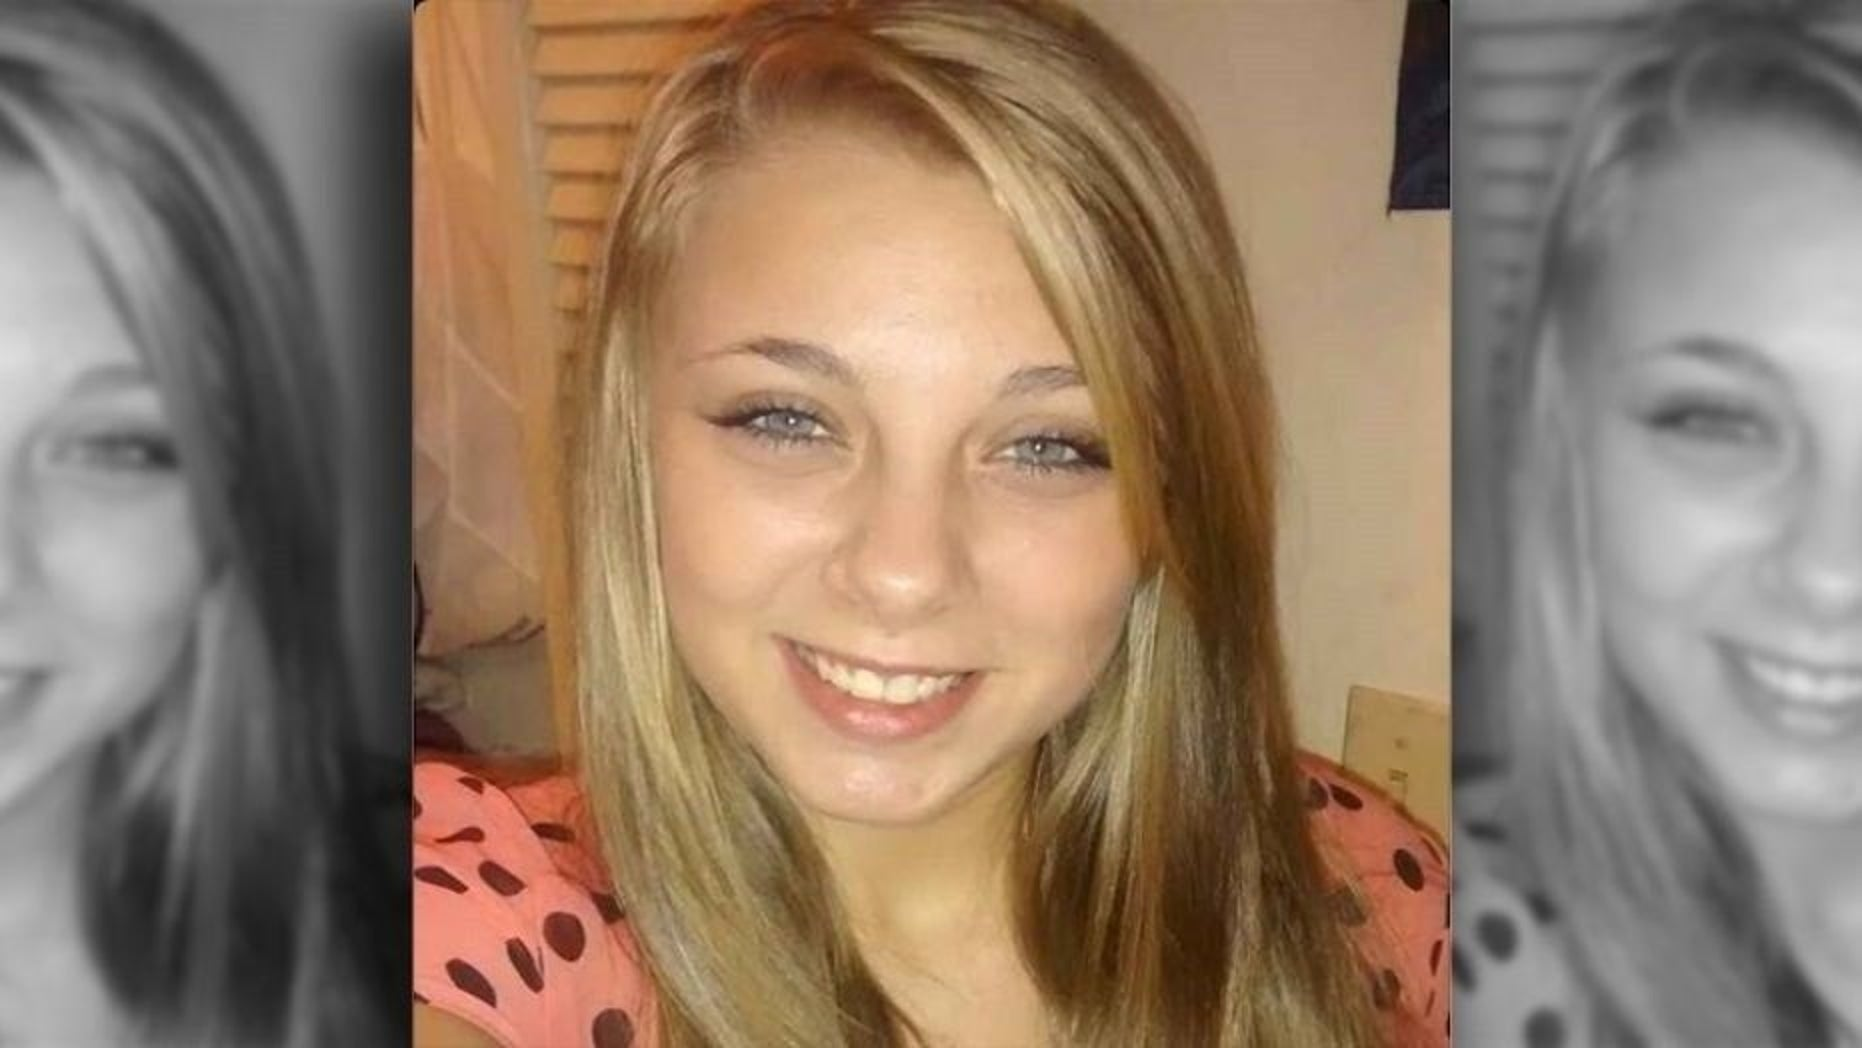 Kaylee Muthart, 20, is blind after she gouged her eyes out while hallucinating in February.